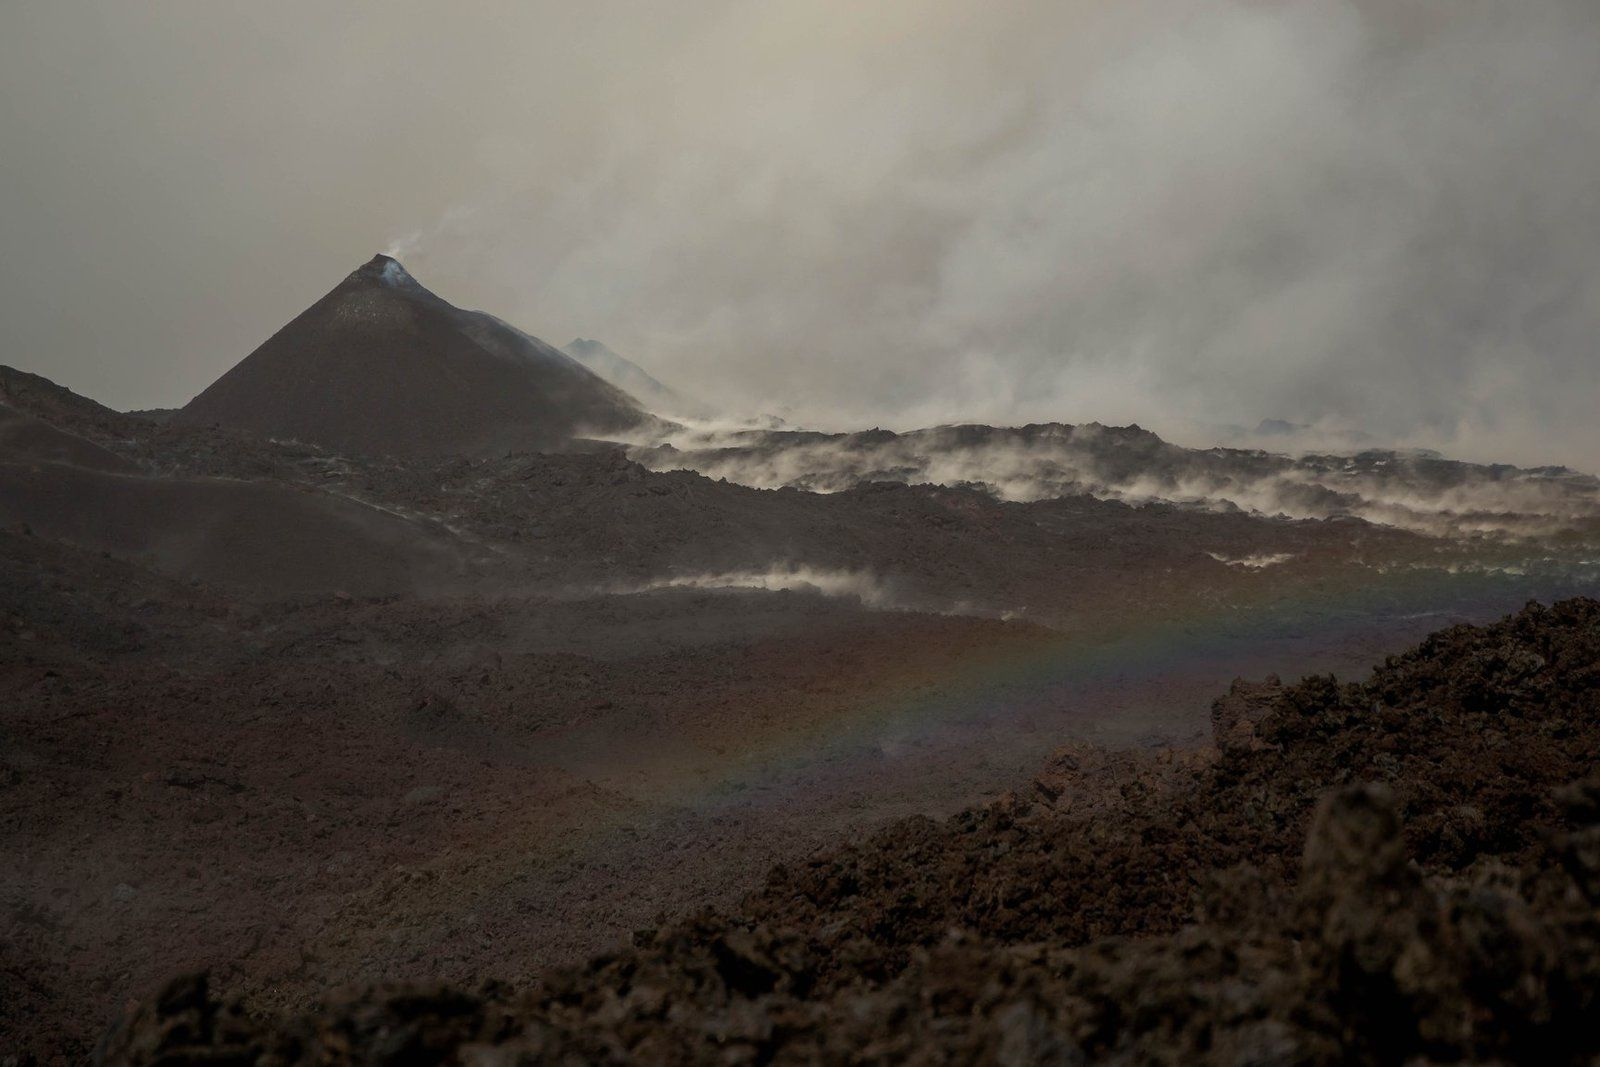 Piton de La Fournaise - Moody weather on 21.05.2018- photo Frédérick Leveuneur via Fournaise info